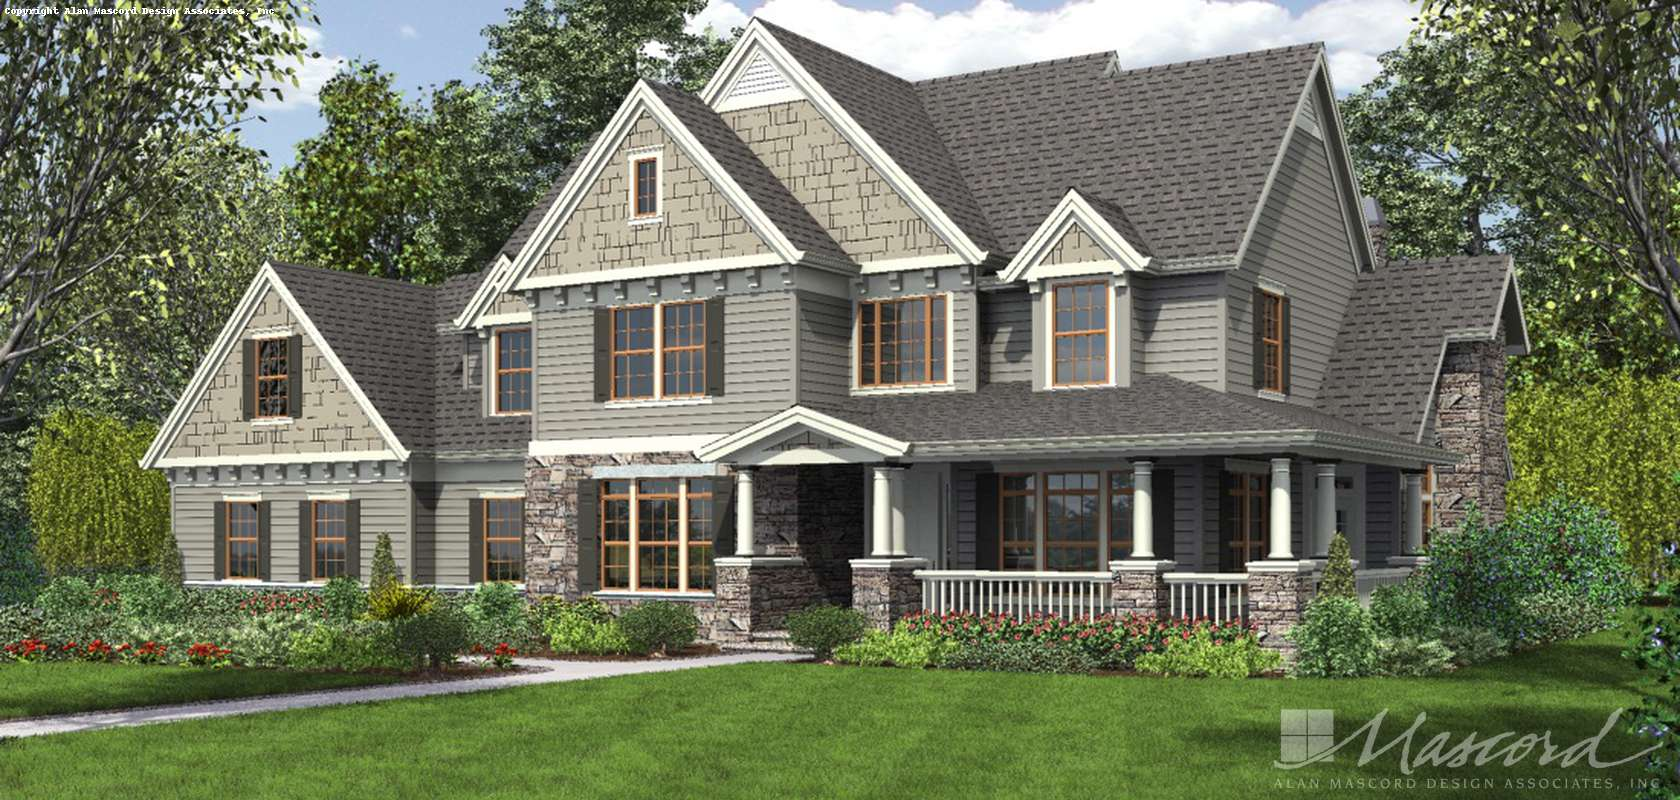 Mascord House Plan 2371: The Masonville